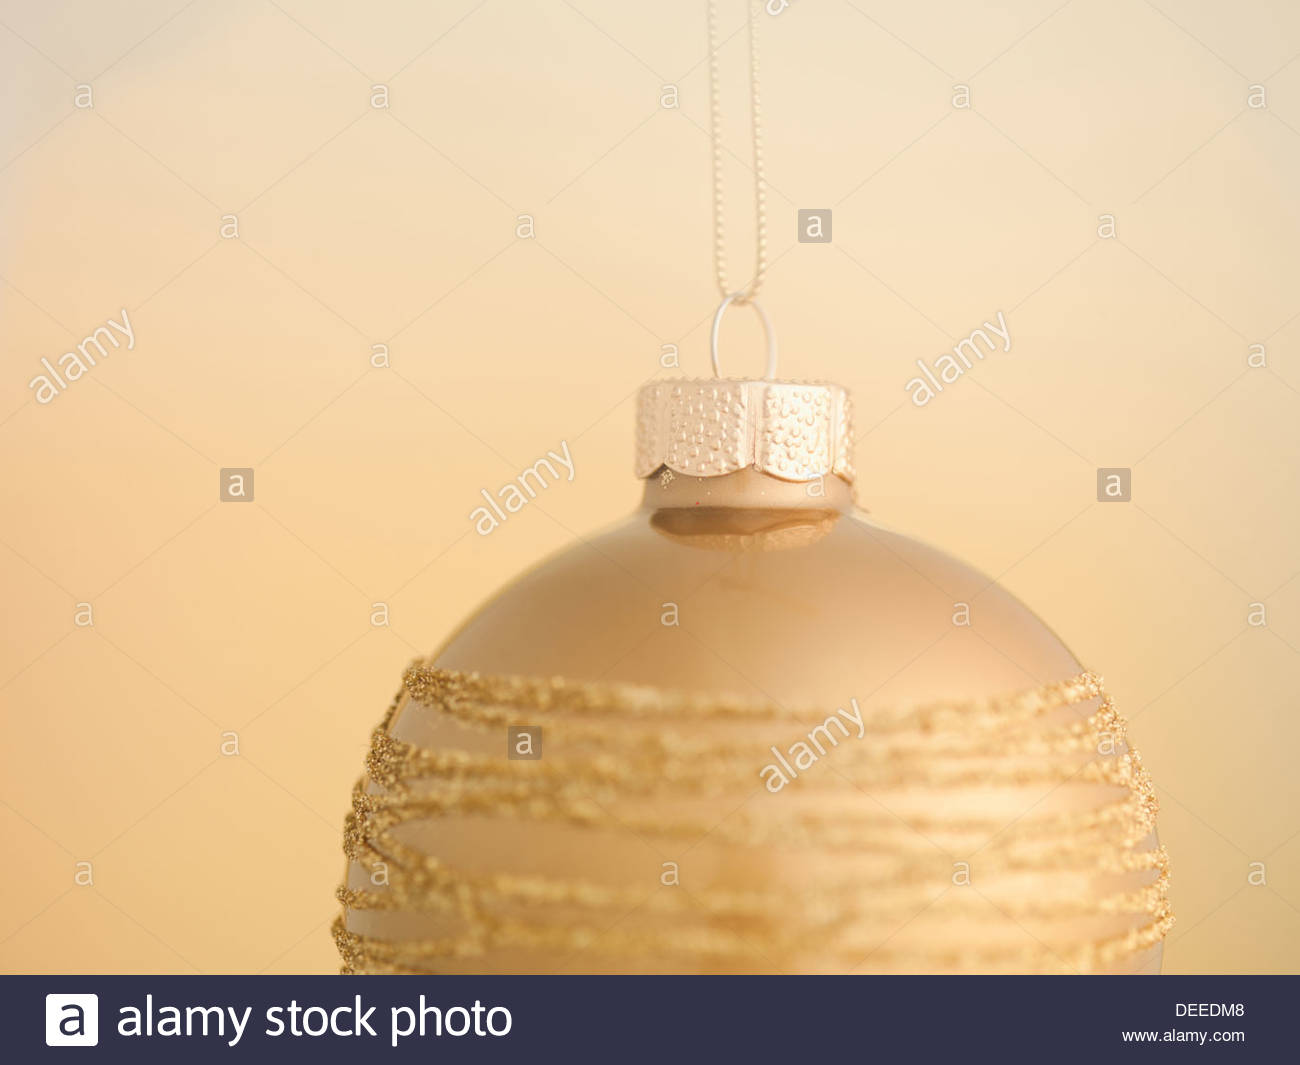 Close up of Christmas ornament hanging on string - Stock Image